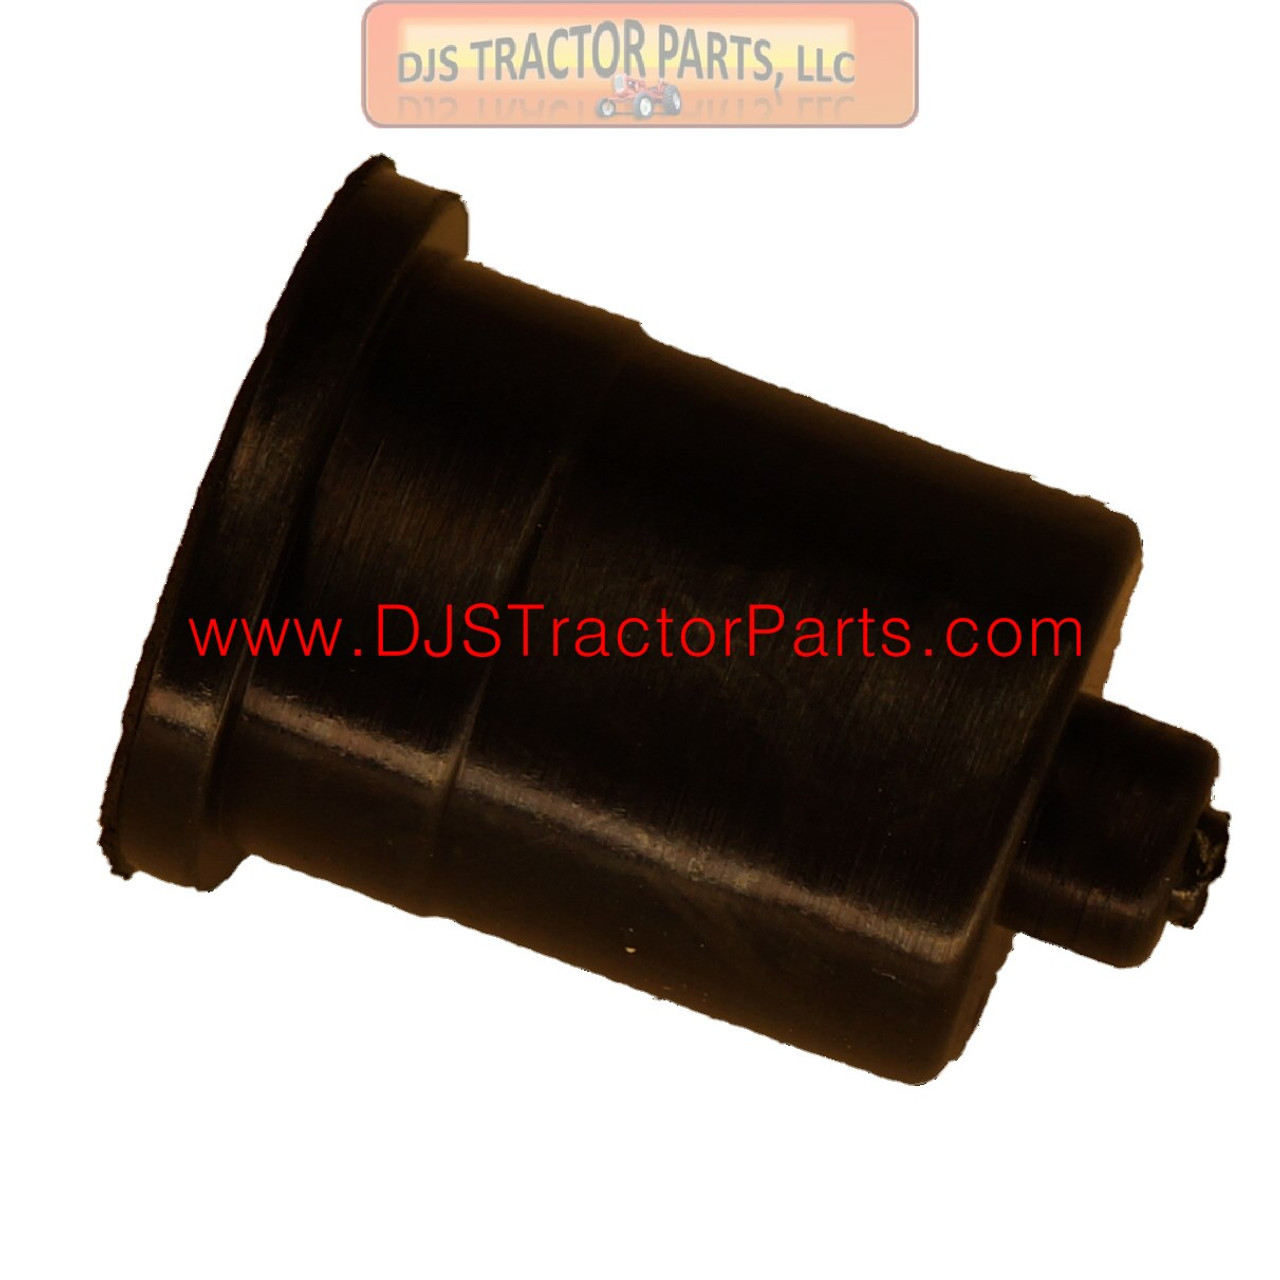 hight resolution of electrical outlet socket boot 1 wire style ab 2285d djs tractor parts llc